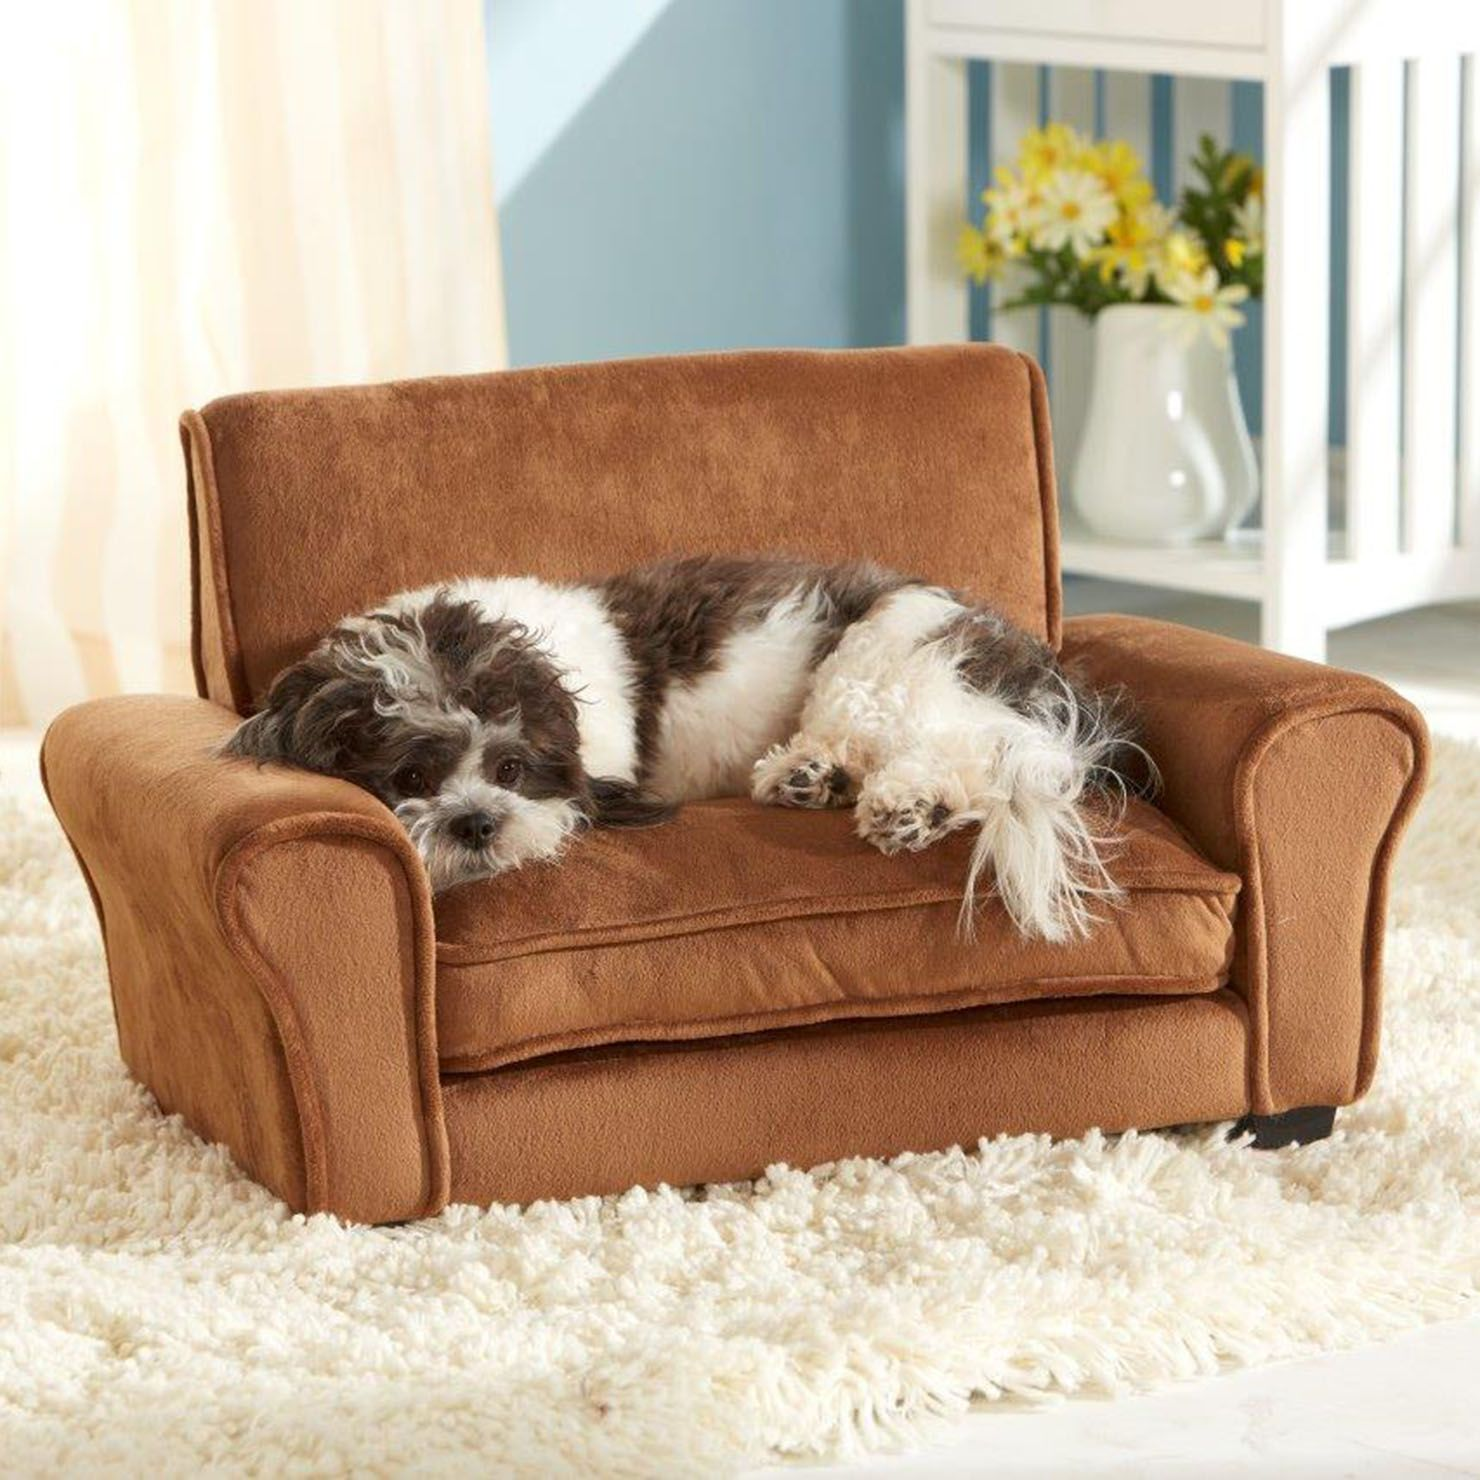 Keep your own sofa clean, give the dog his very own! Dog